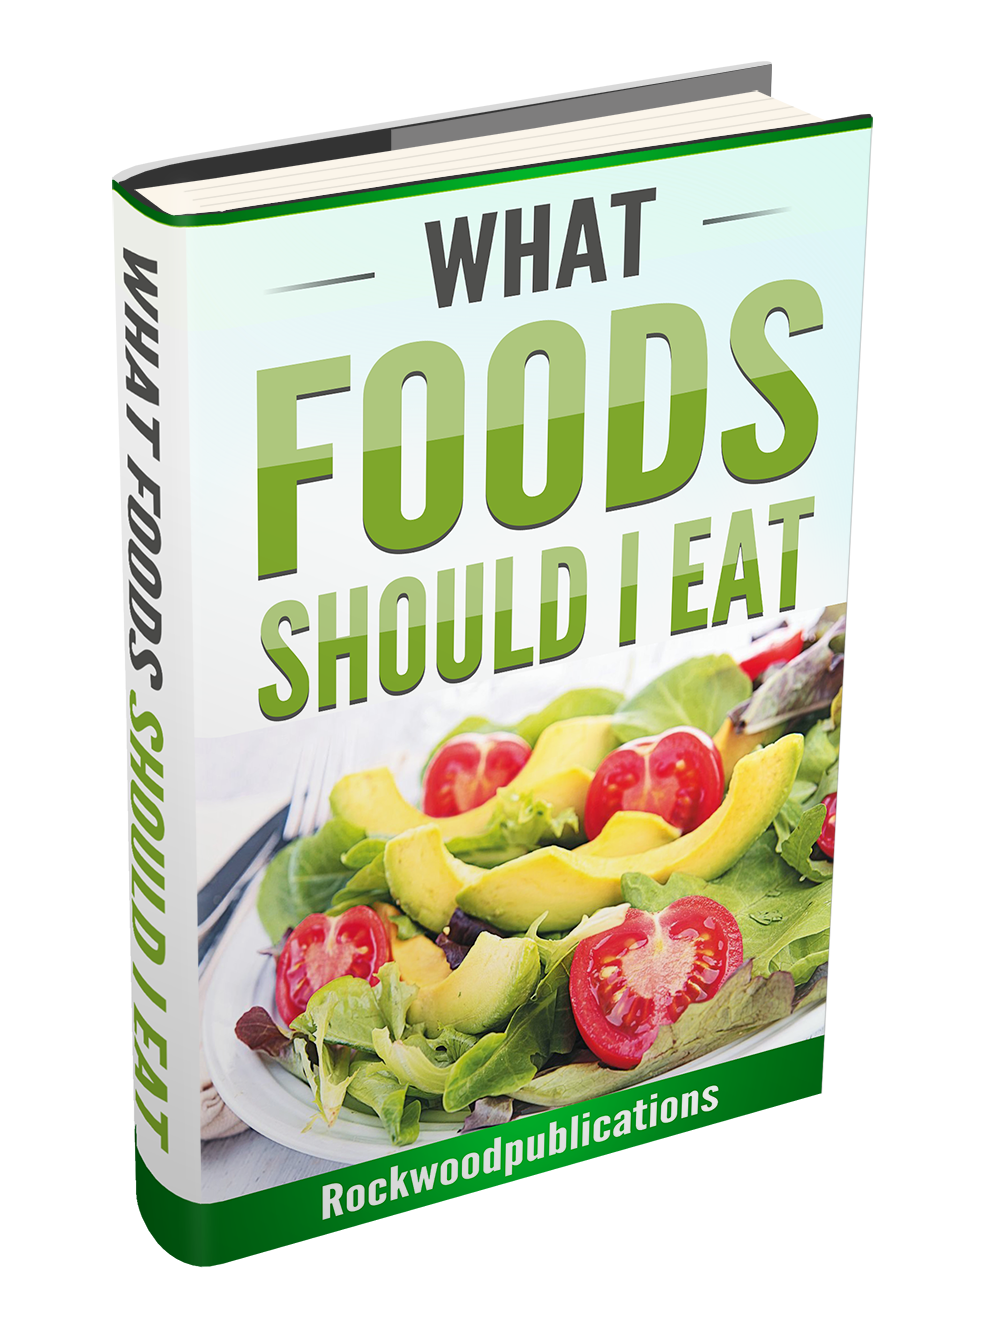 What Foods Should I Eat Ebook